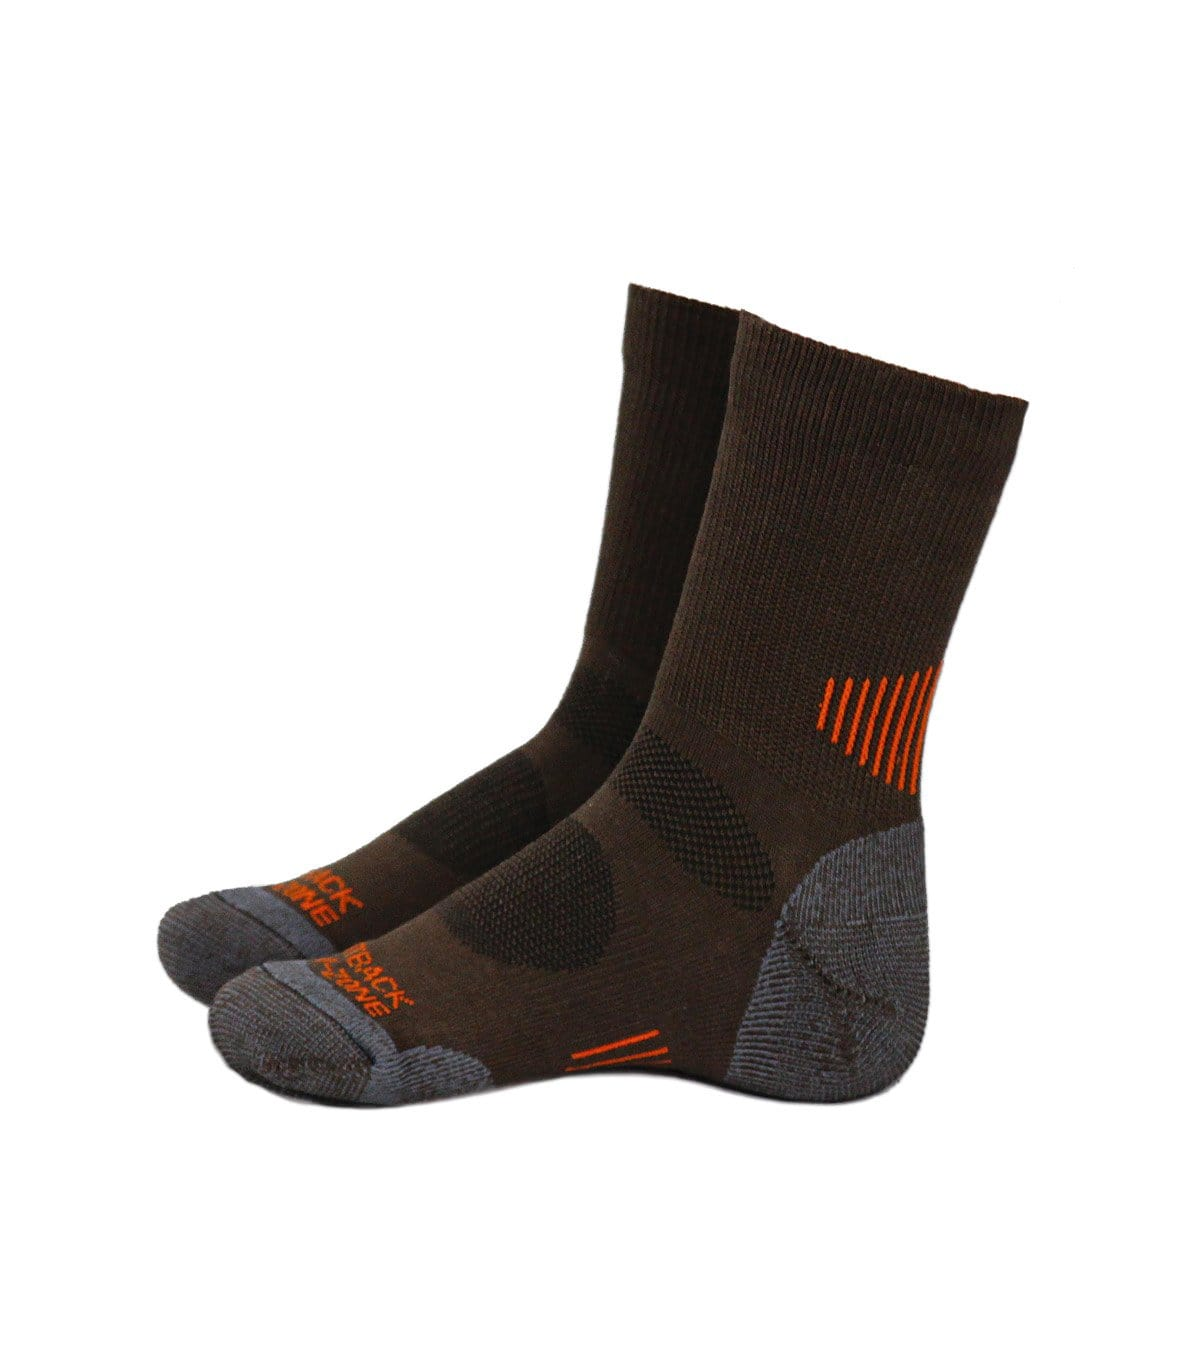 Outback Trading Company Women's Travel Sock 6002-BLK-OSFA